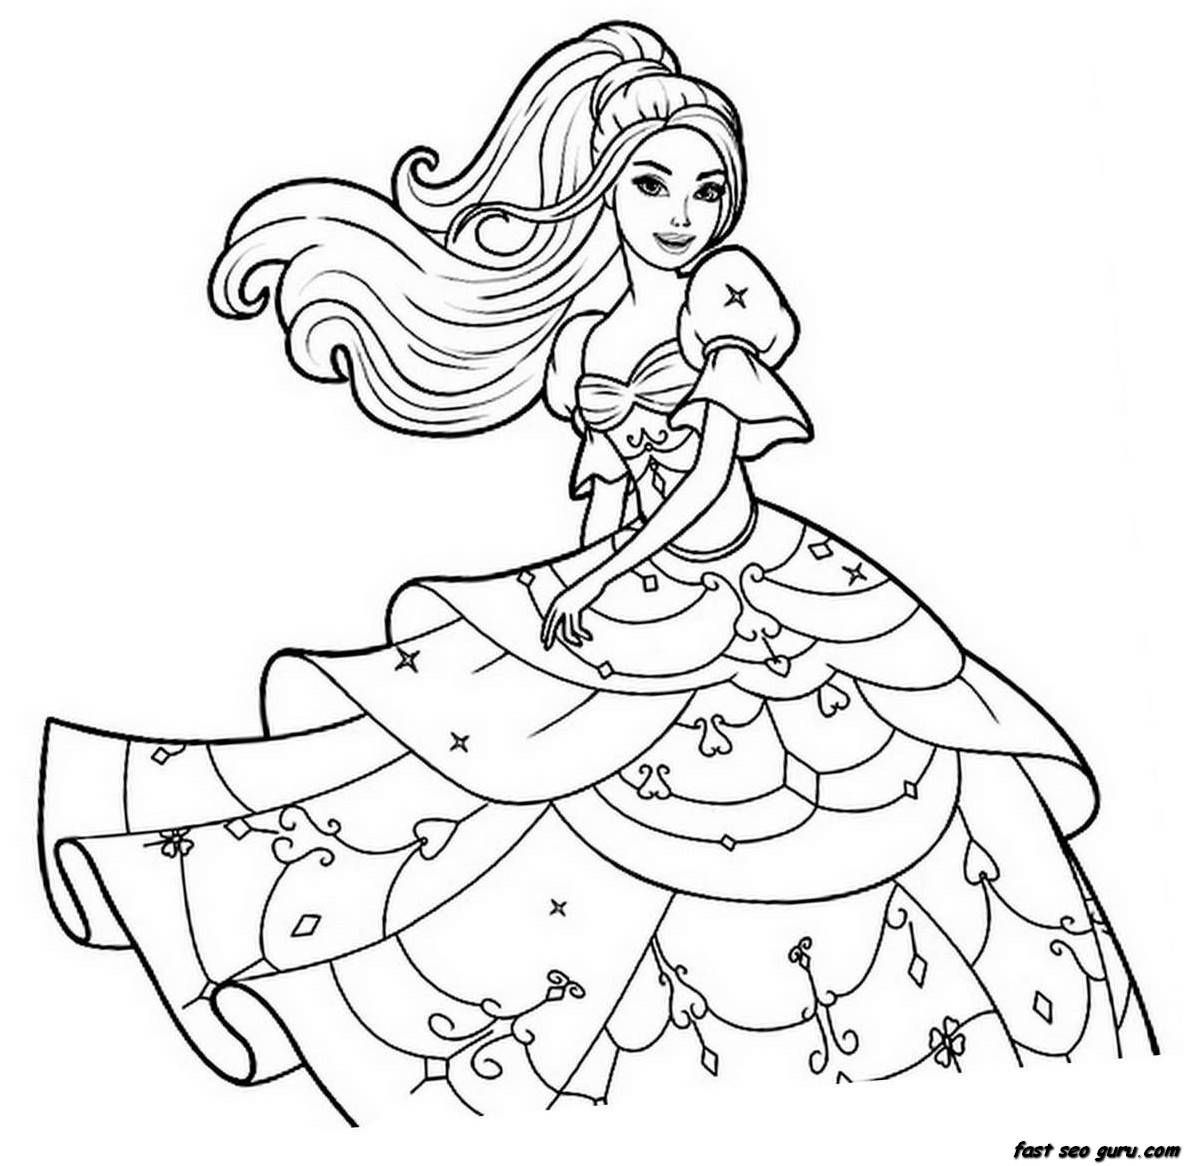 Http Colorings Co Kids Printable Coloring Pages For Girls Chris Brown Para Colorir